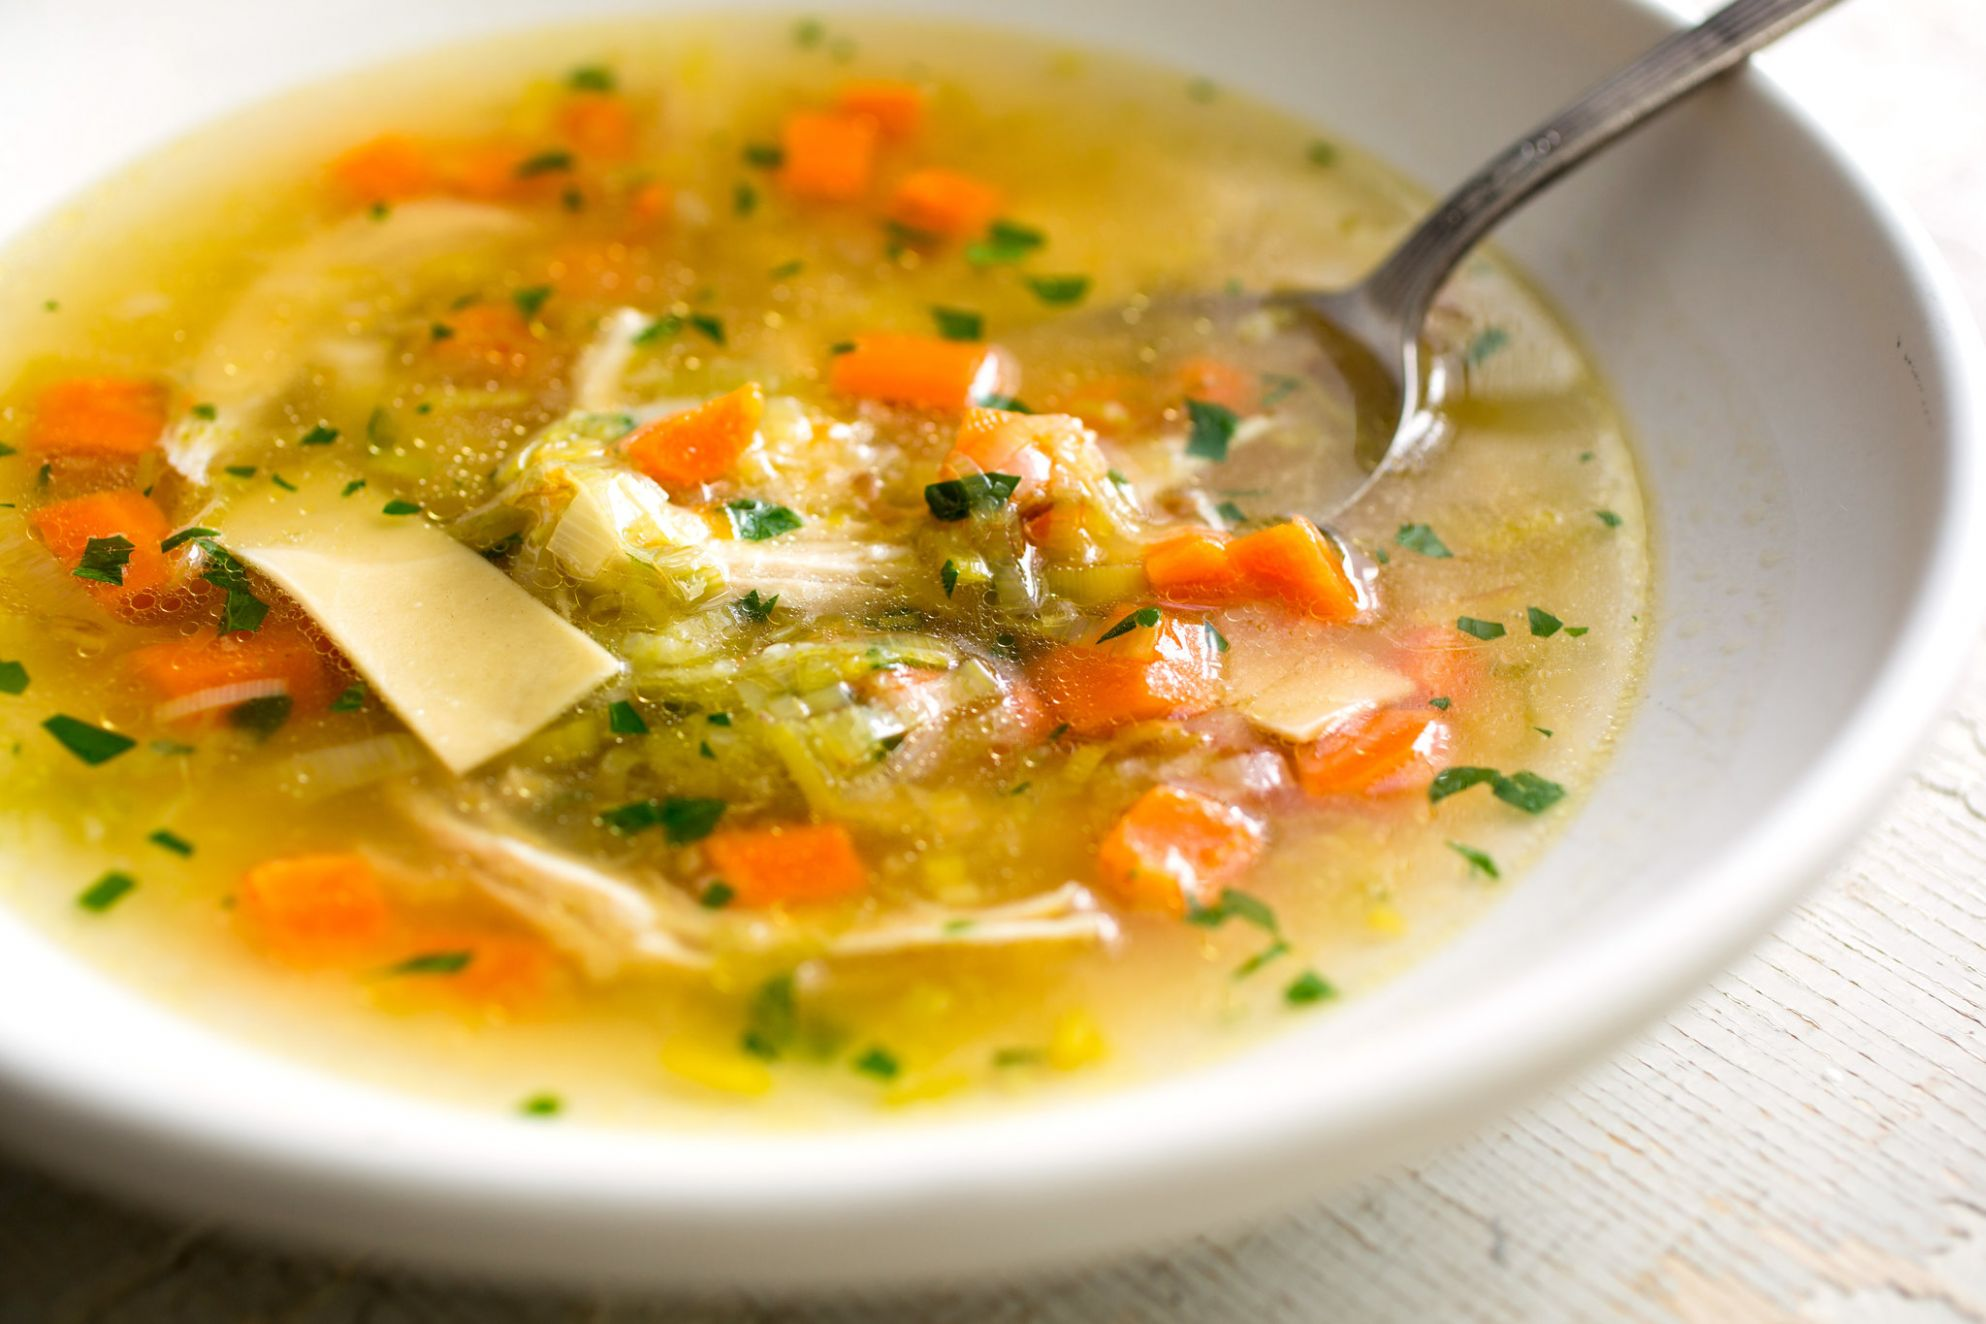 Chicken Noodle Soup - Soup Recipes Using Chicken Stock